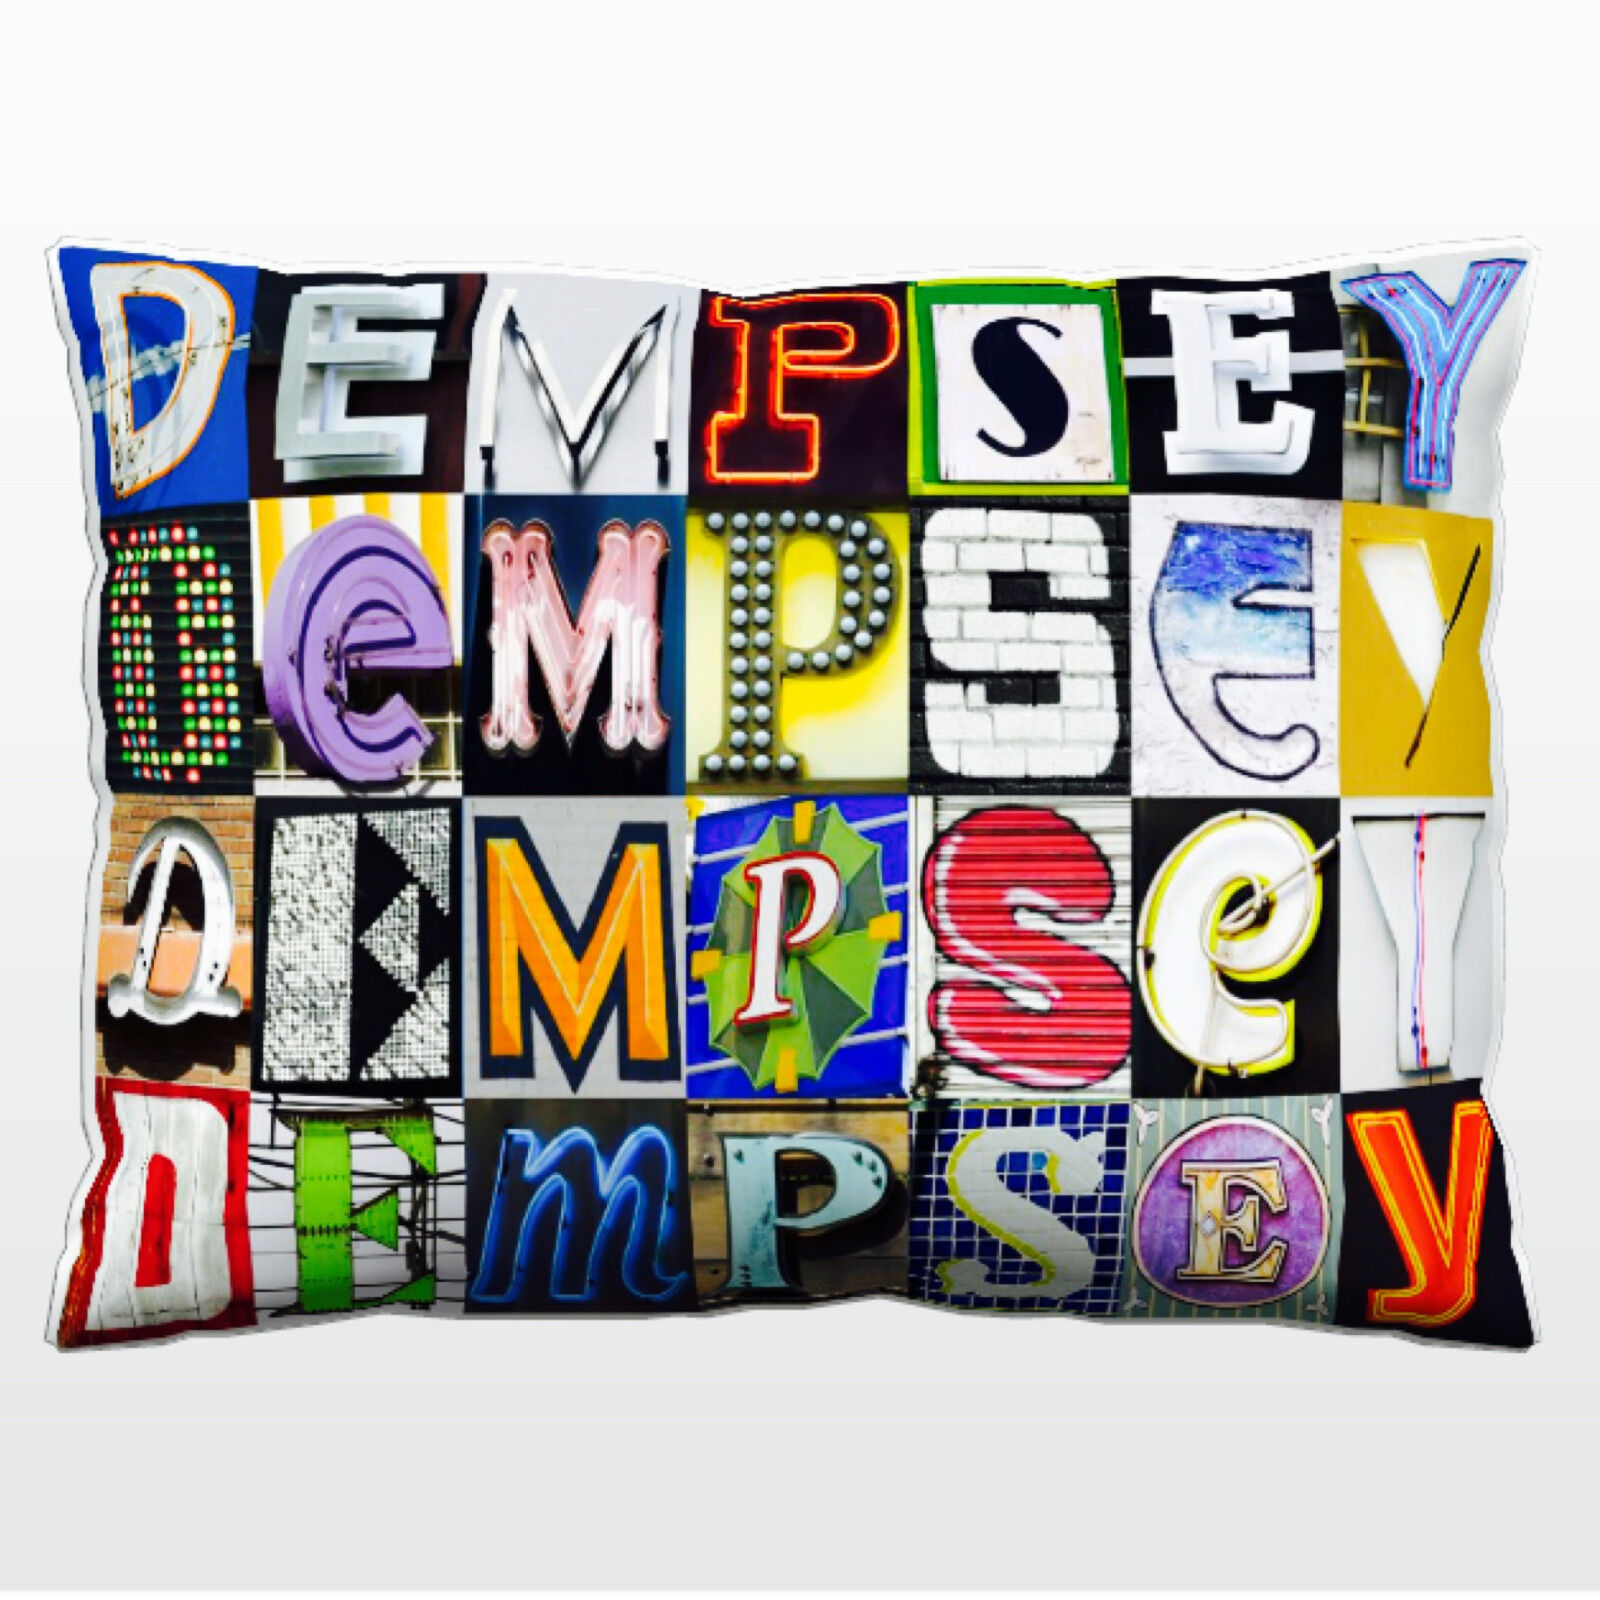 Personalized Pillow featuring the name DEMPSEY in photos of actual sign letters